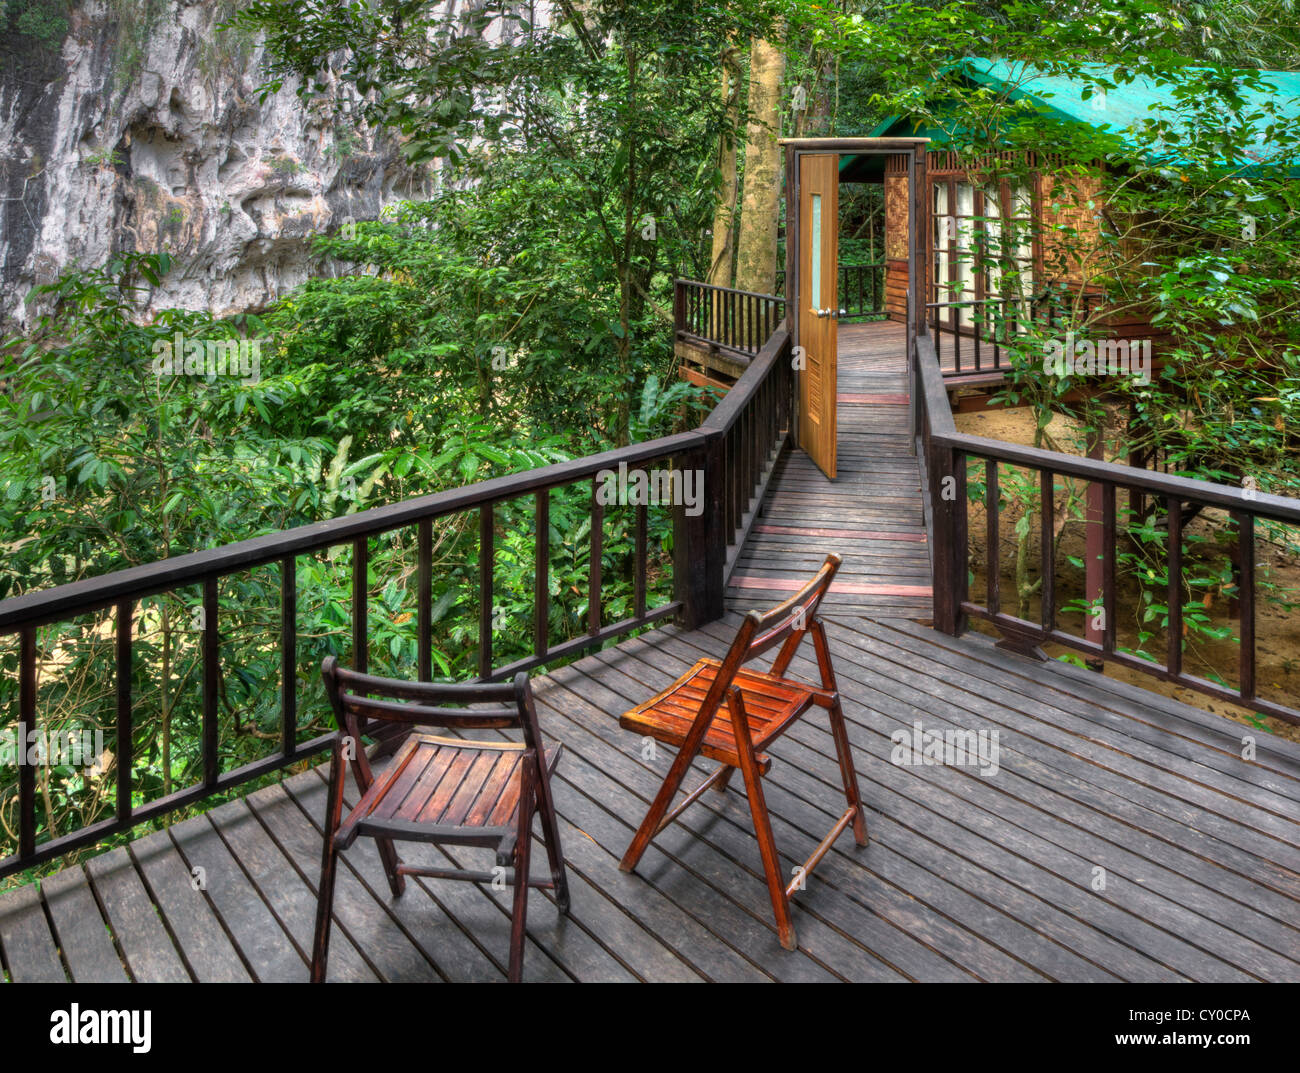 Uncategorized Houses In The Jungle a deck connecting twotree houses at our jungle house near khao sok national park surathani provence thailand